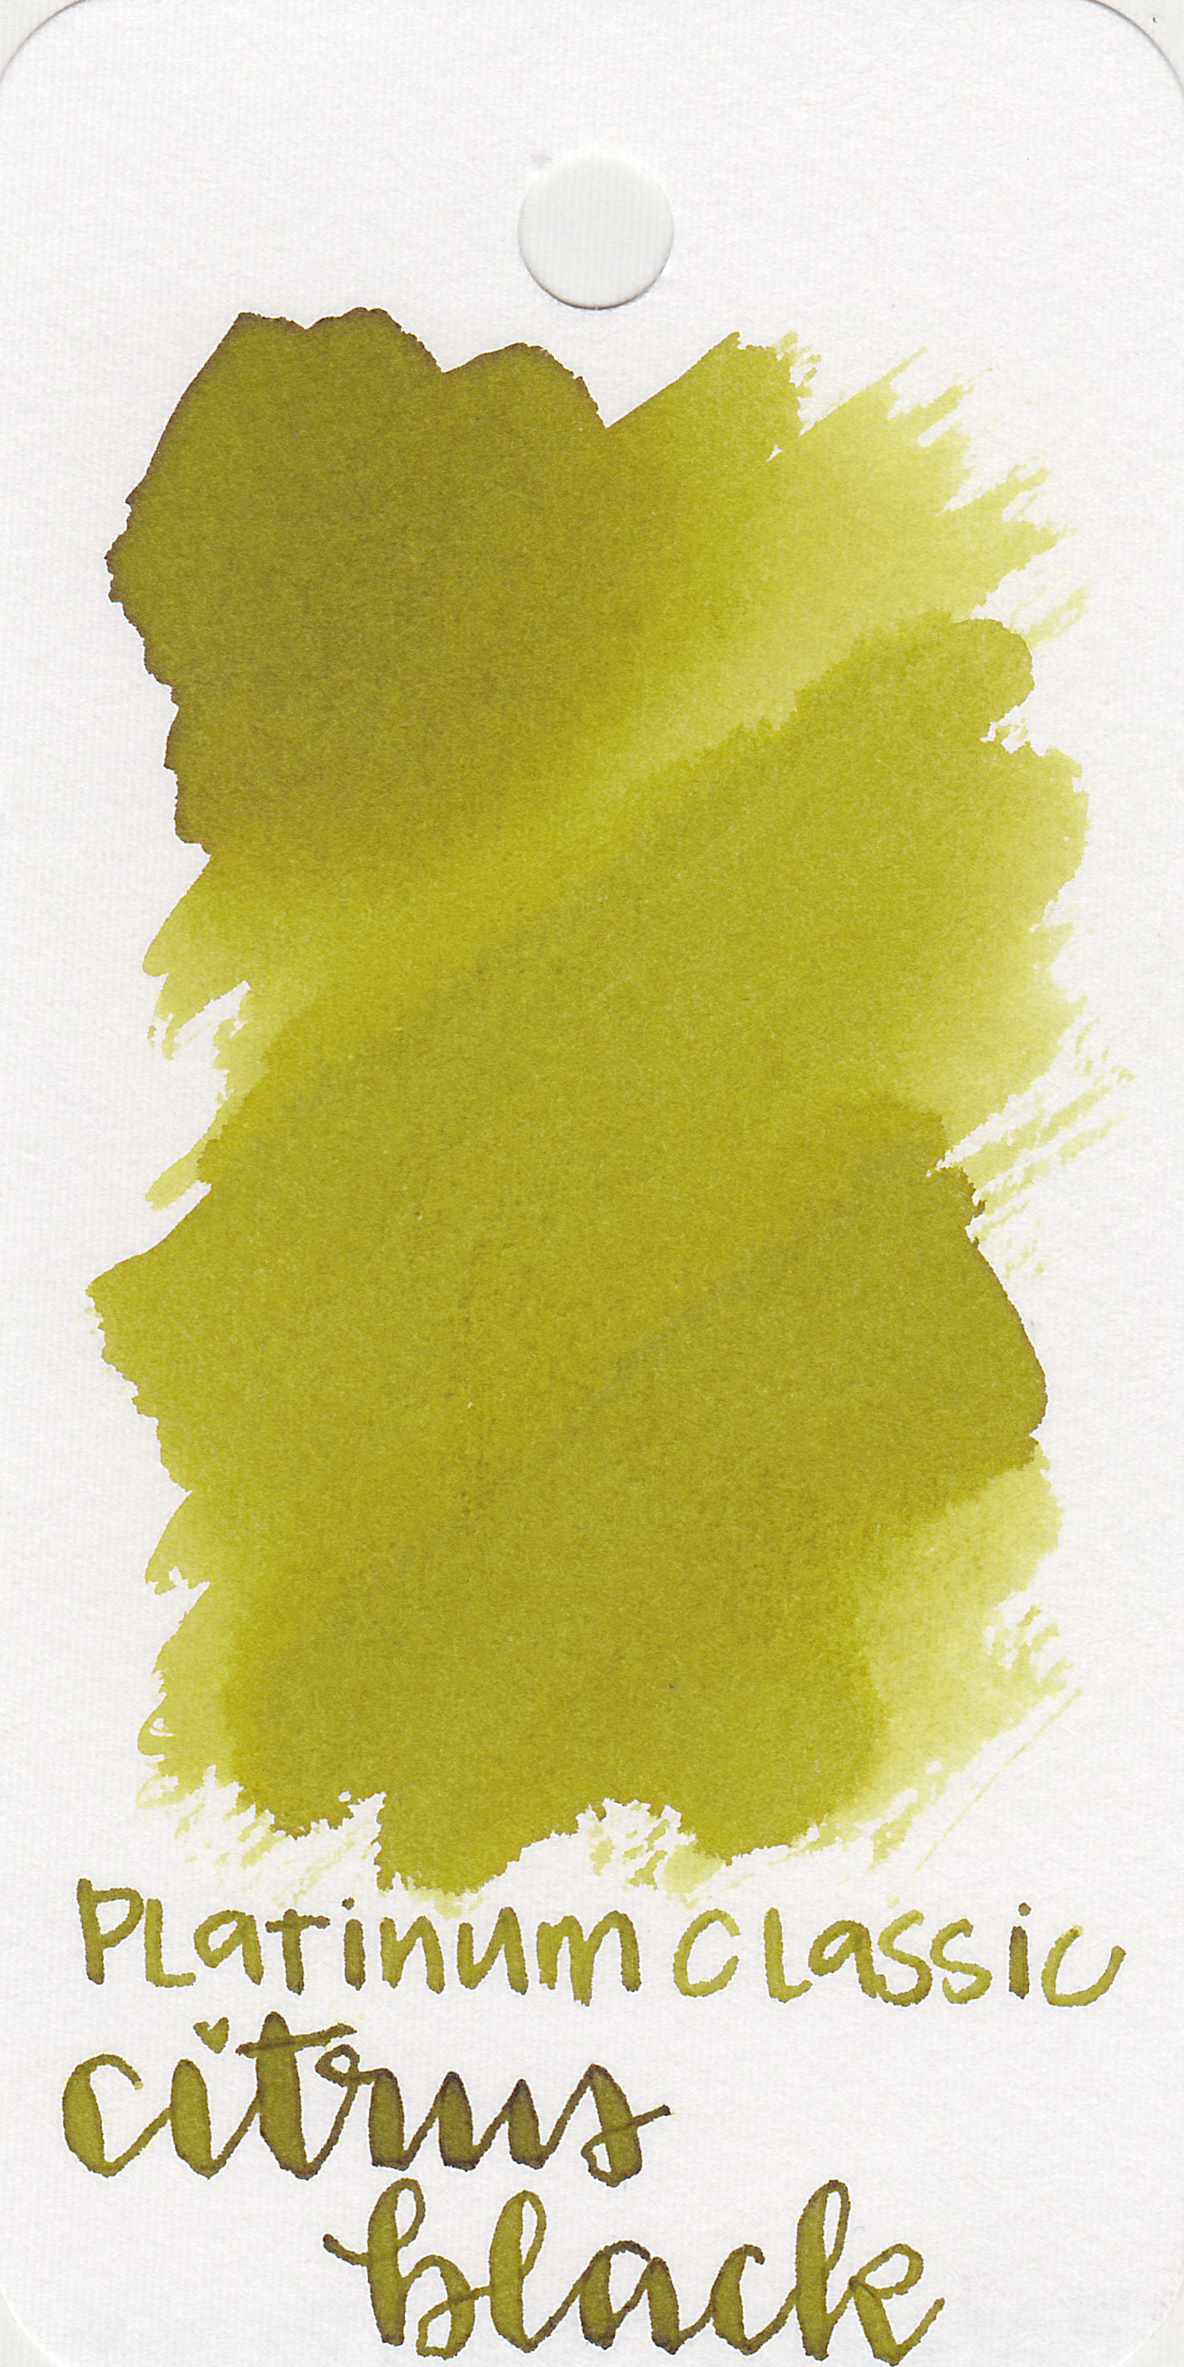 The color: - Citrus Black is a dark yellow with a heavy green undertone.